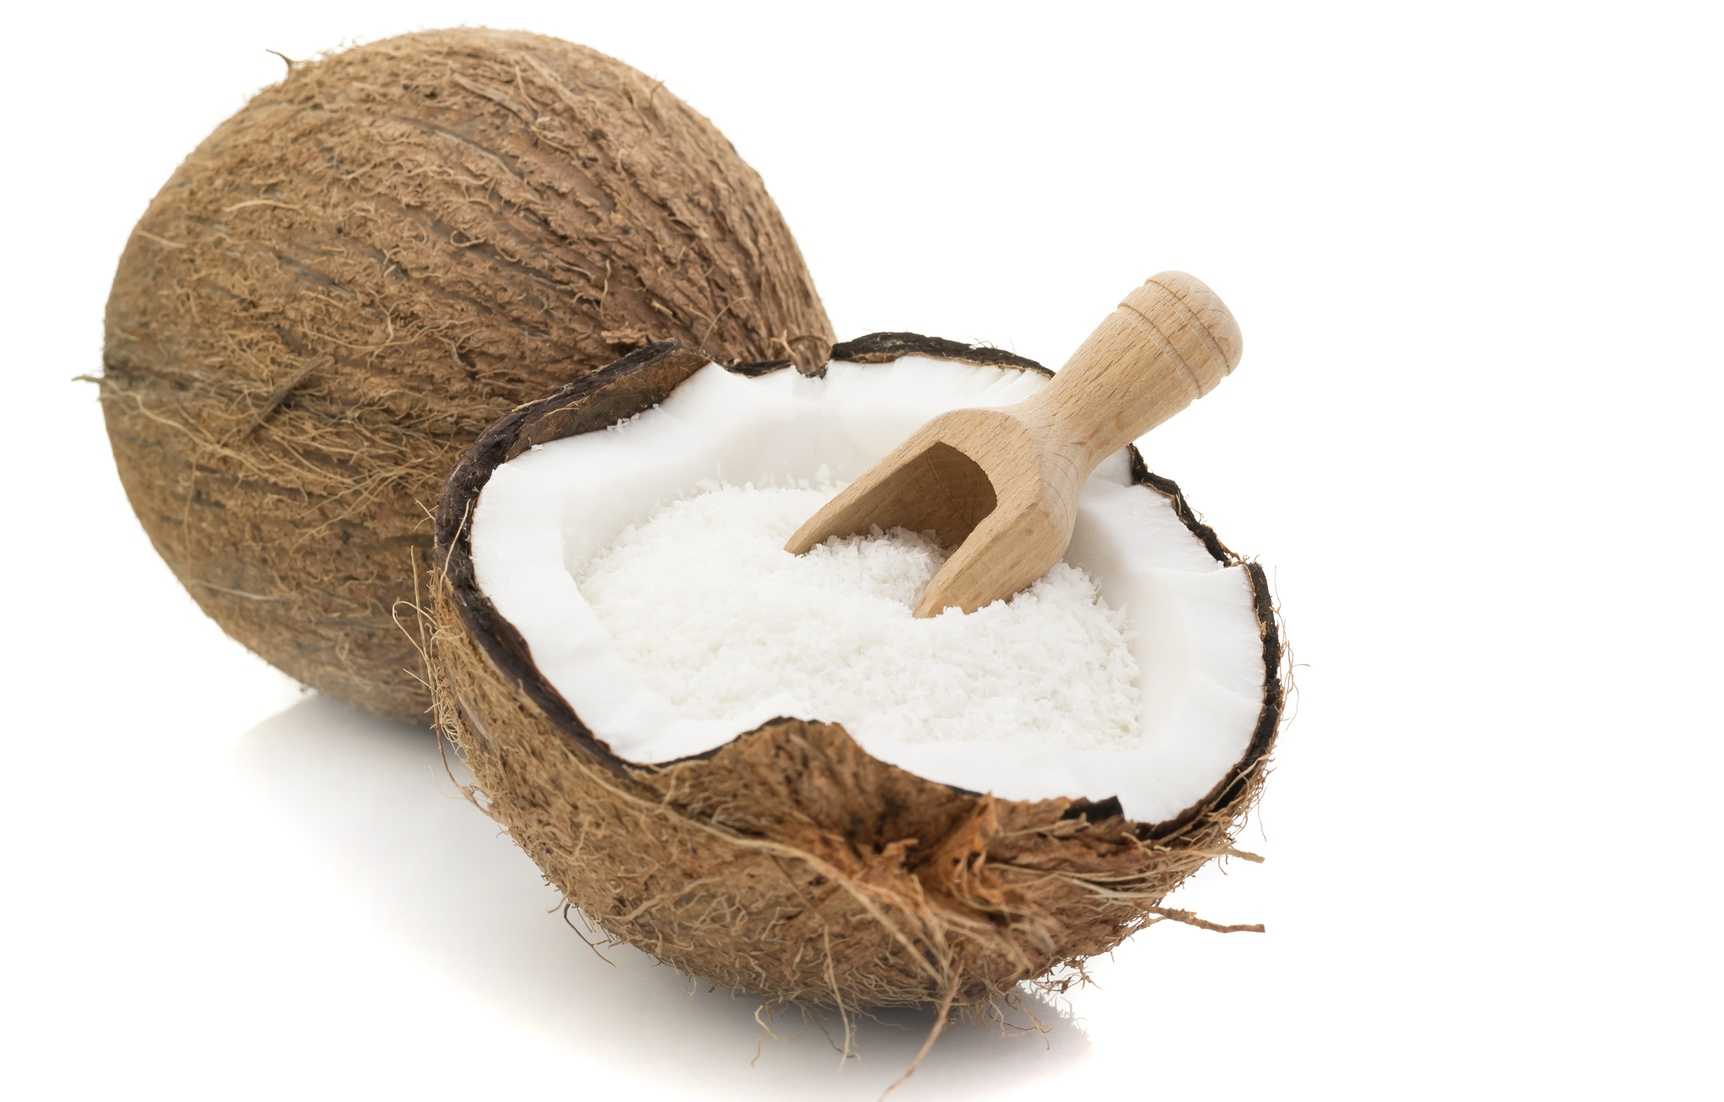 A coconut with desiccated coconut and scoop on white background